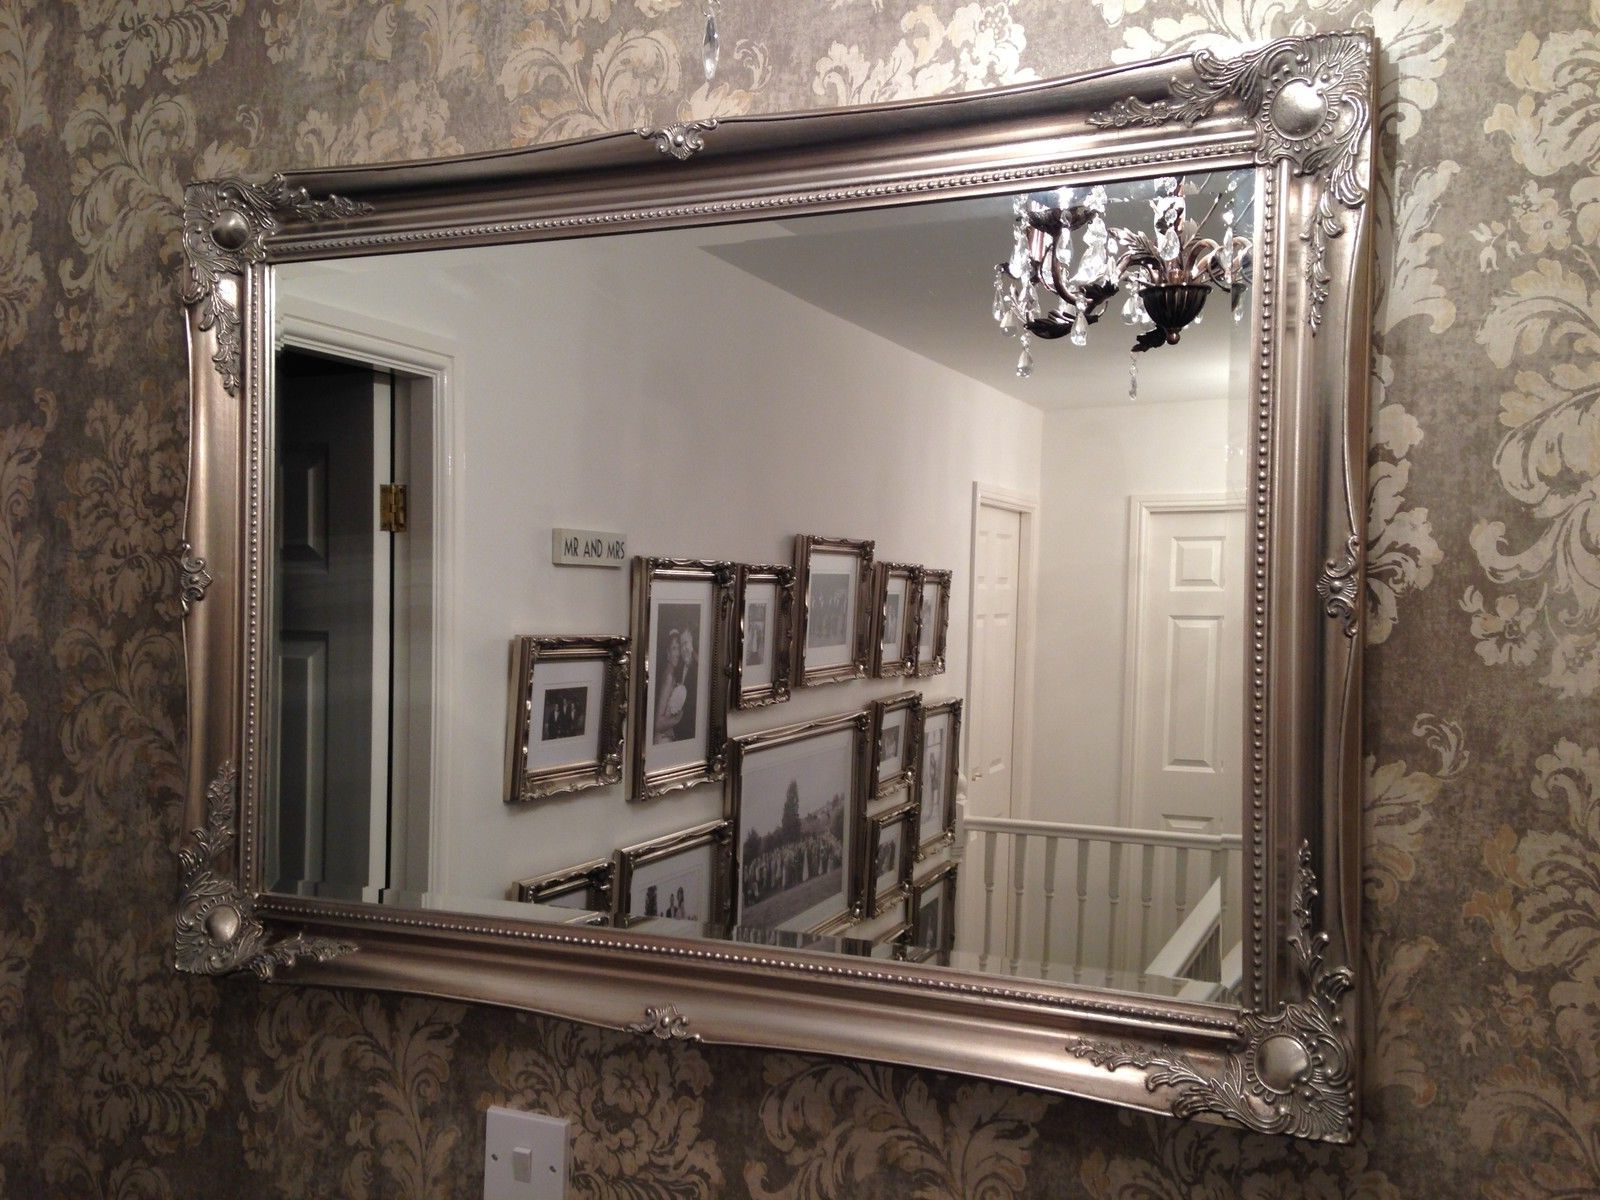 Large Silver Framed Wall Mirror With Well Known X Large Antique Silver Shabby Chic Ornate Decorative Wall Mirror Save ££S (View 3 of 20)